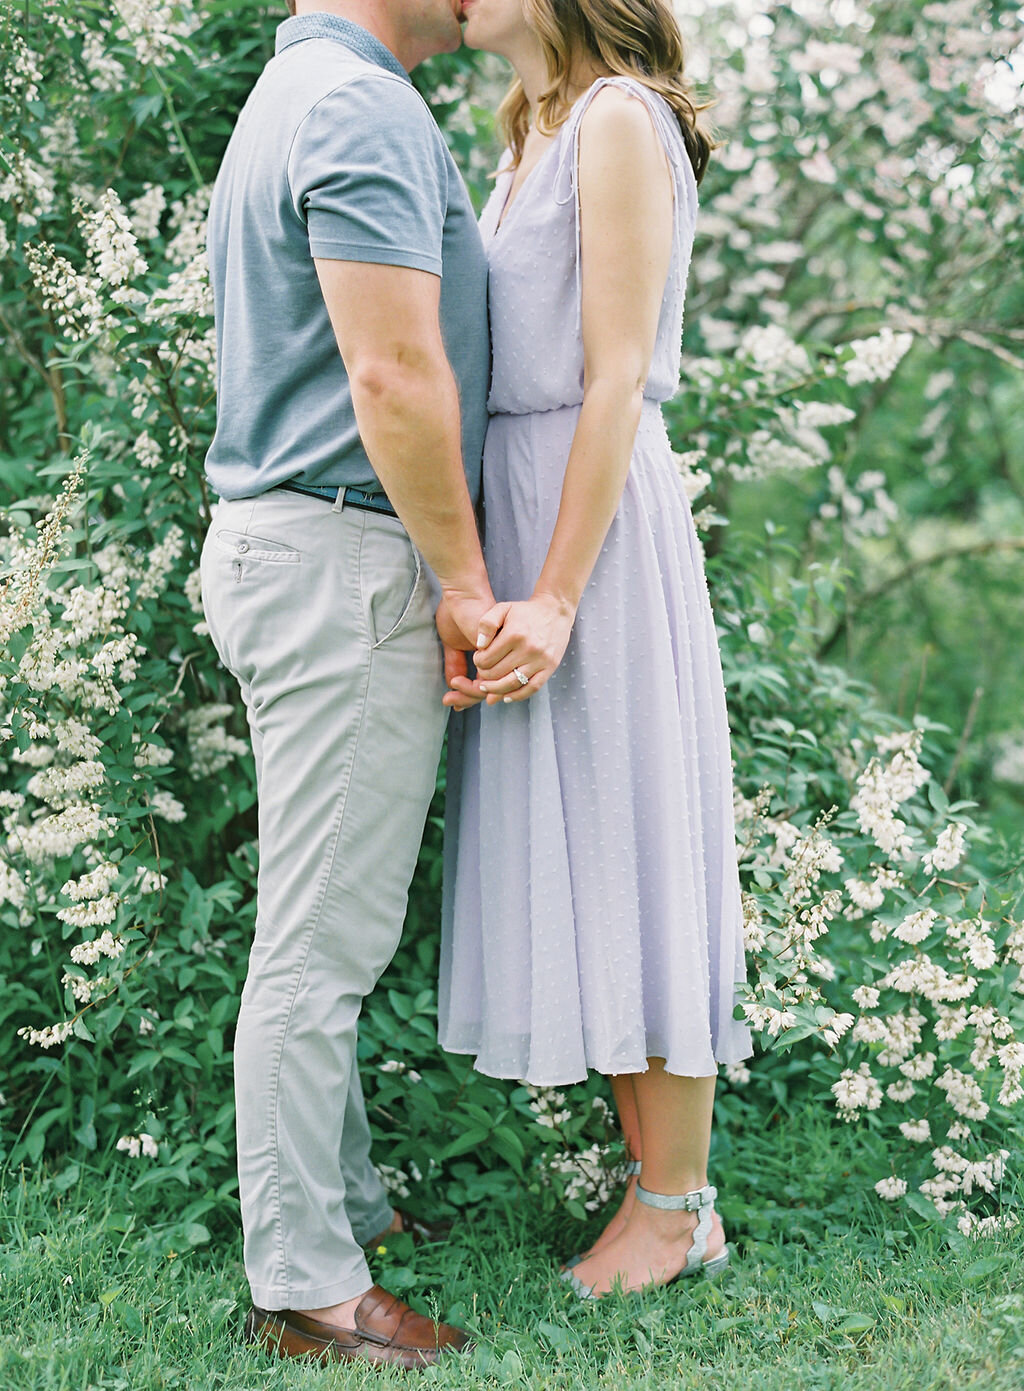 Cylburn Arboretum and Tribeca Engagement Photography Session by Vicki Grafton on East Made Co Baltimore Wedding Planner Blog-57.jpg